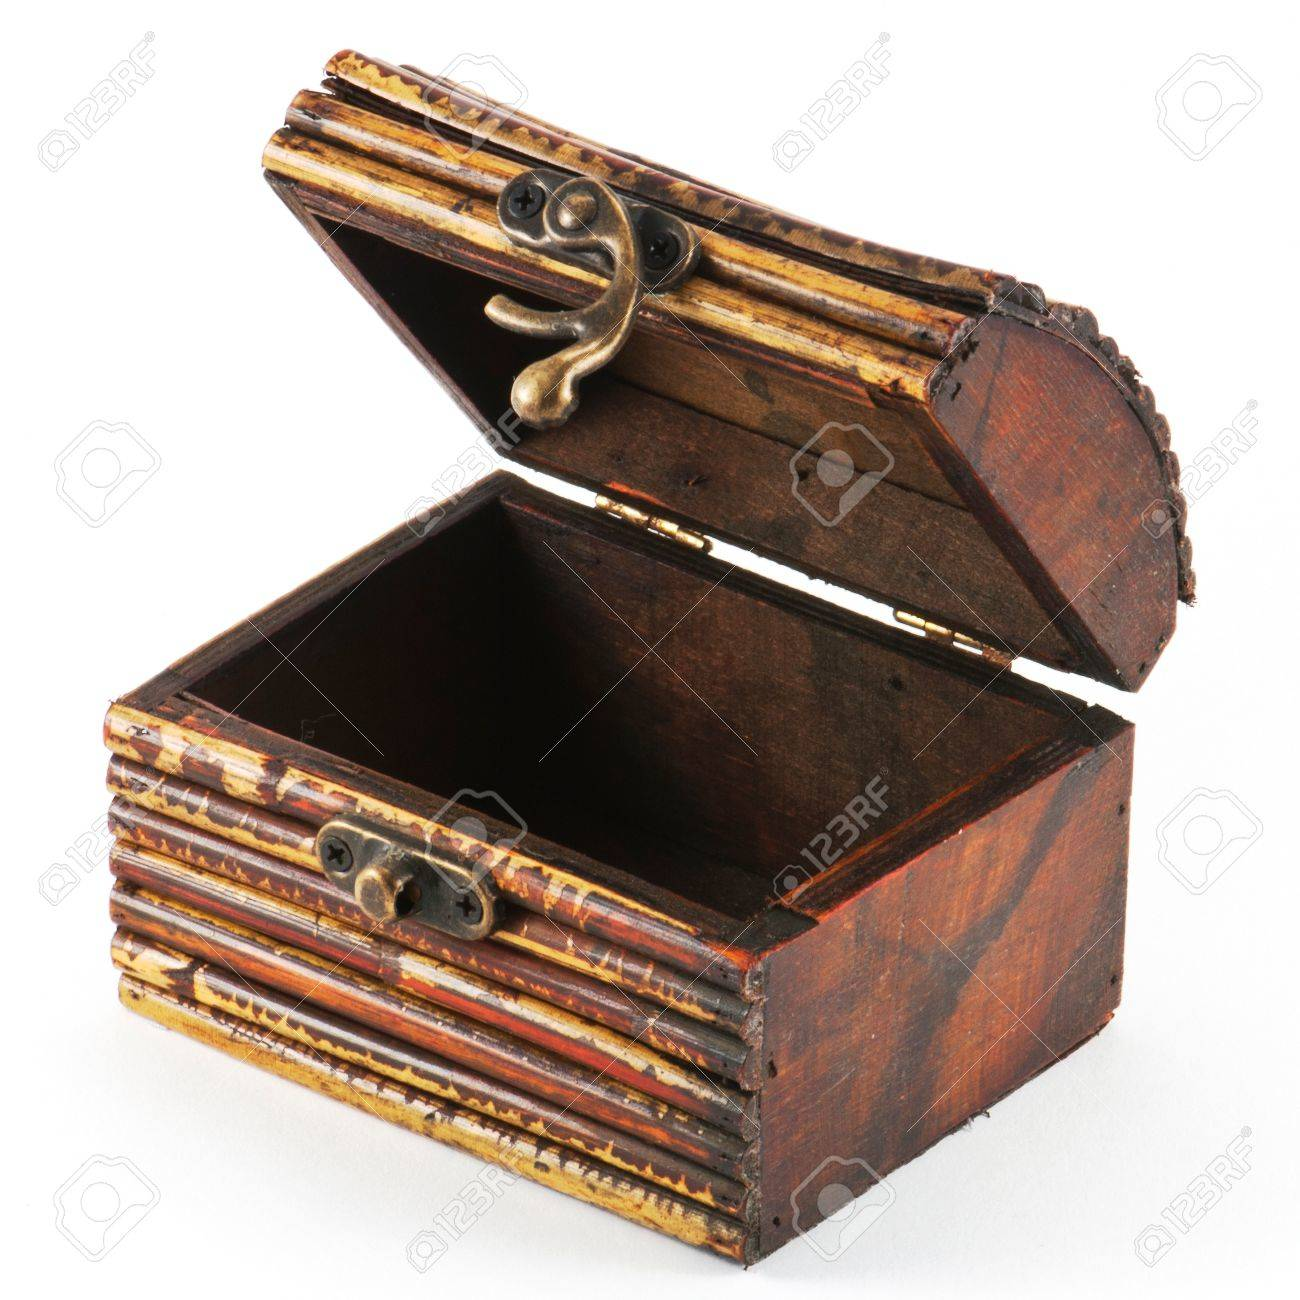 Wooden casket isolated on white background Stock Photo - 12324653